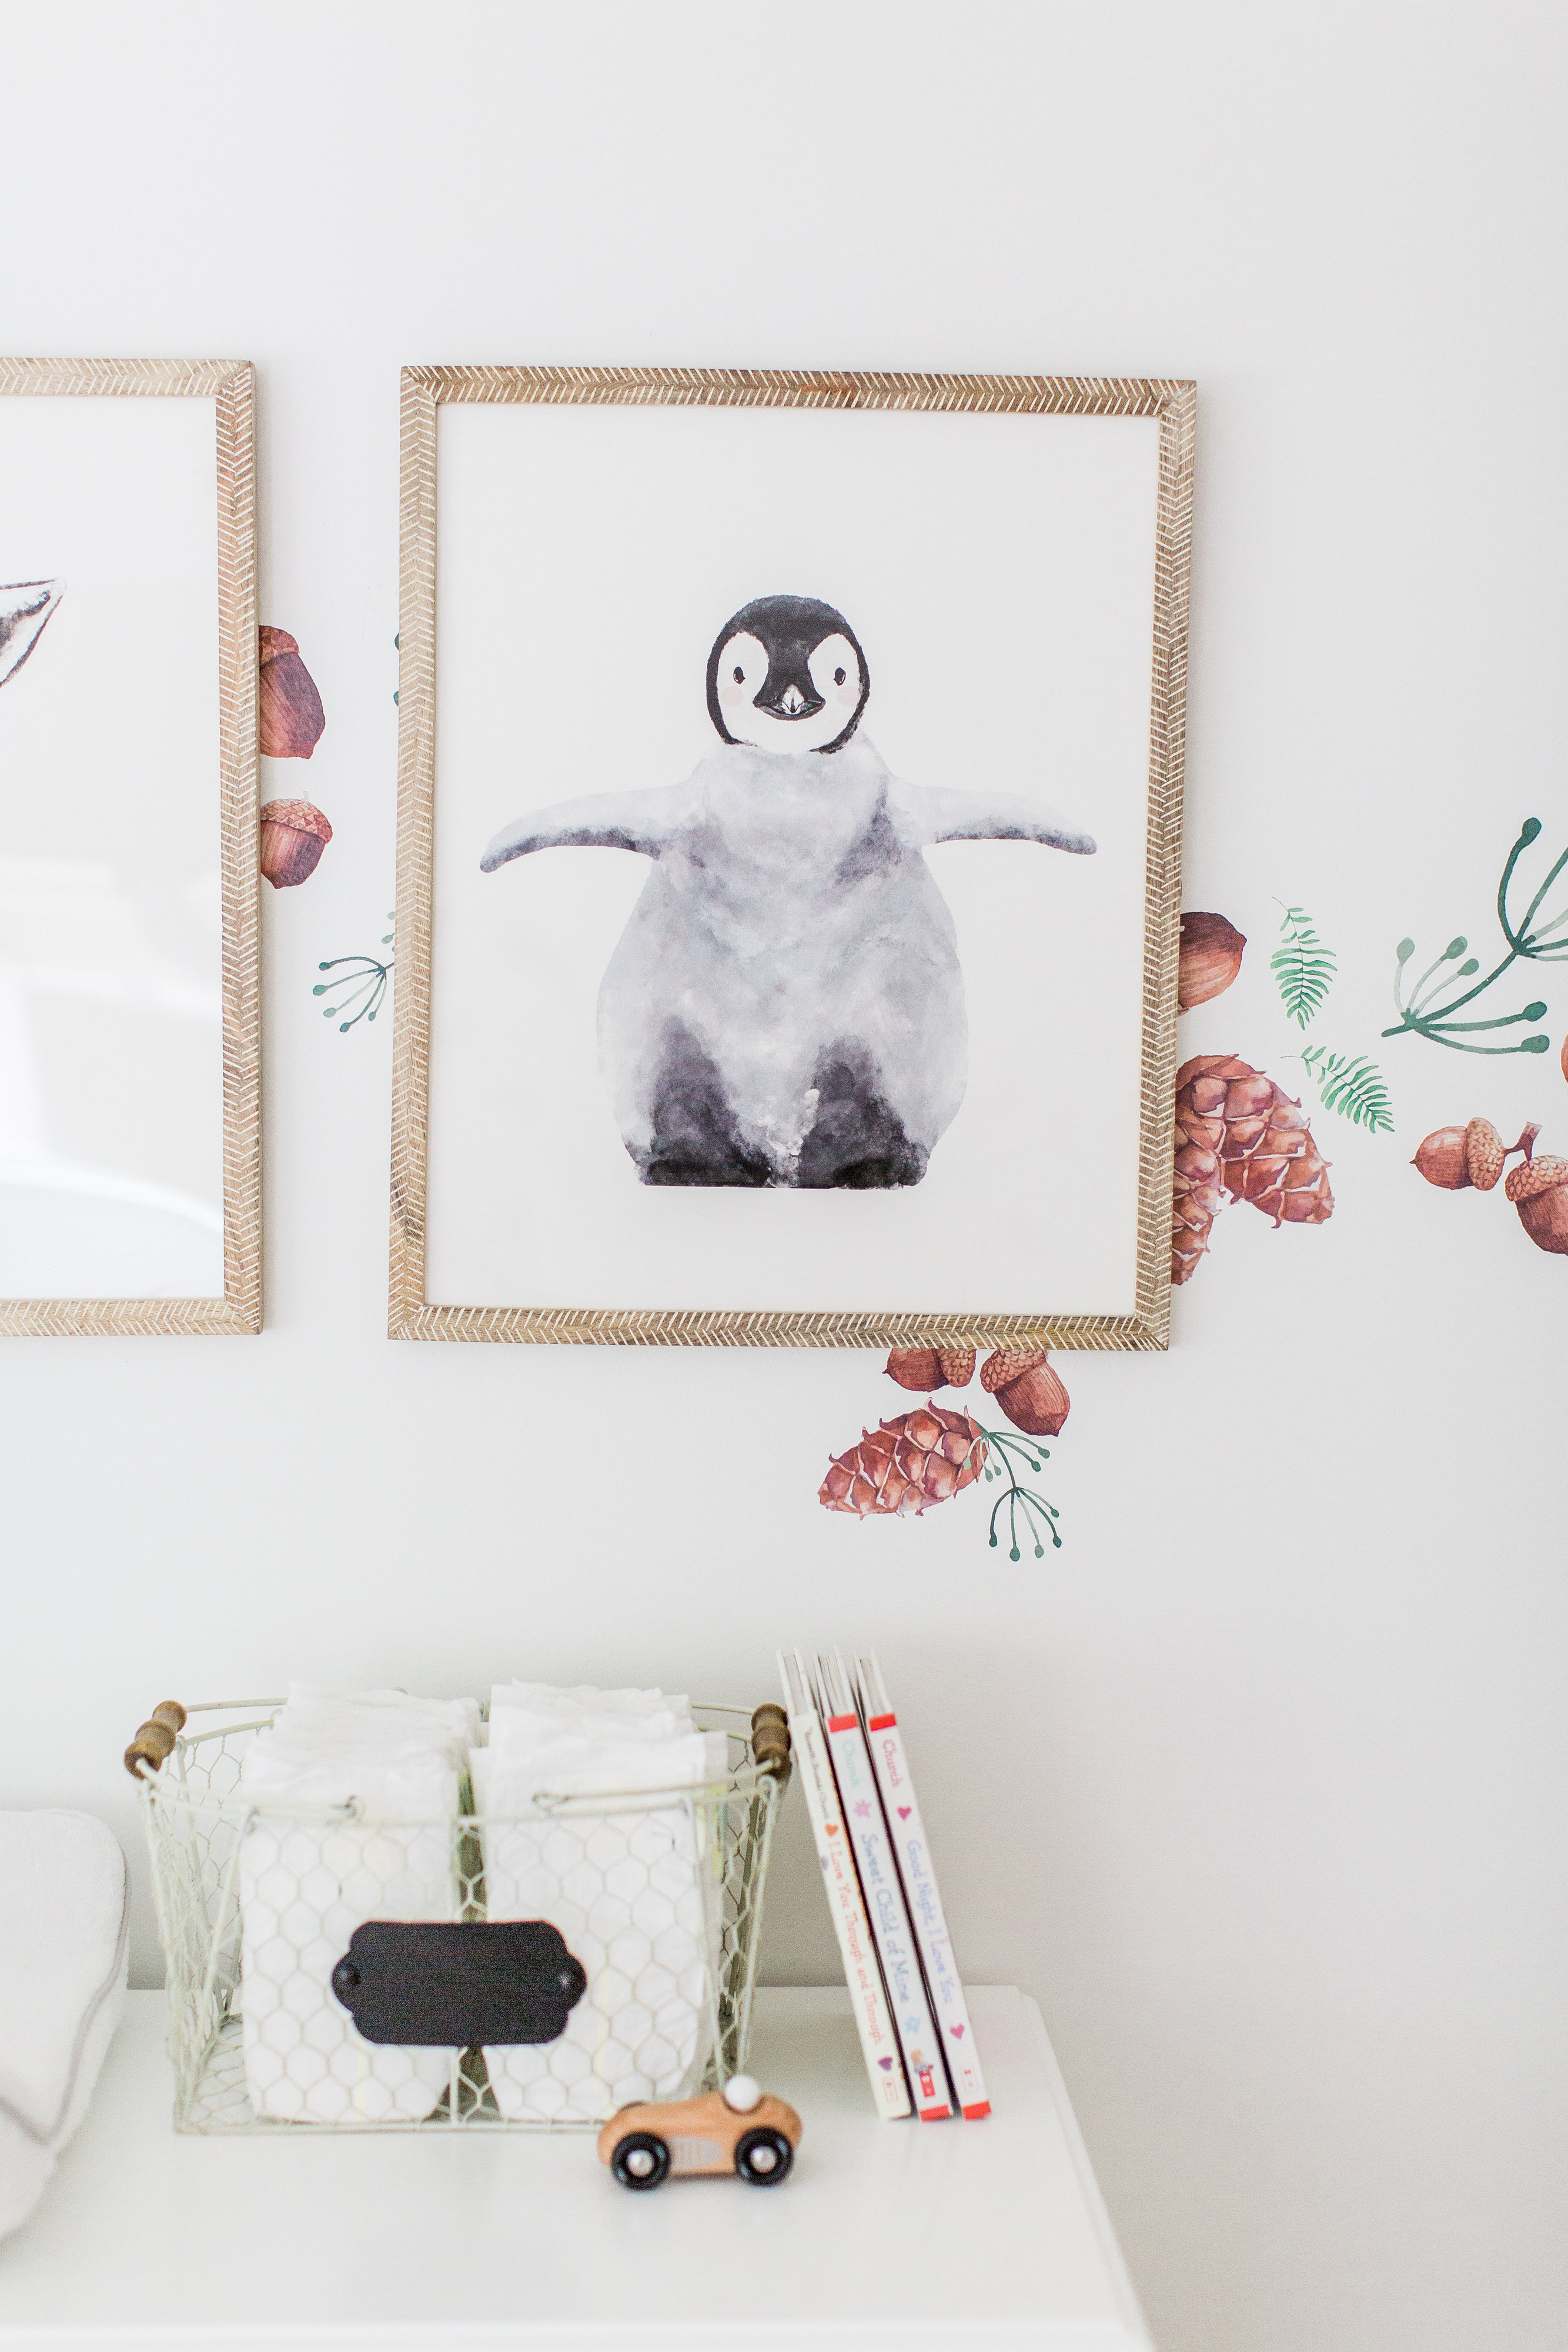 View More: http://marykonkinphotography.pass.us/theo-nursery